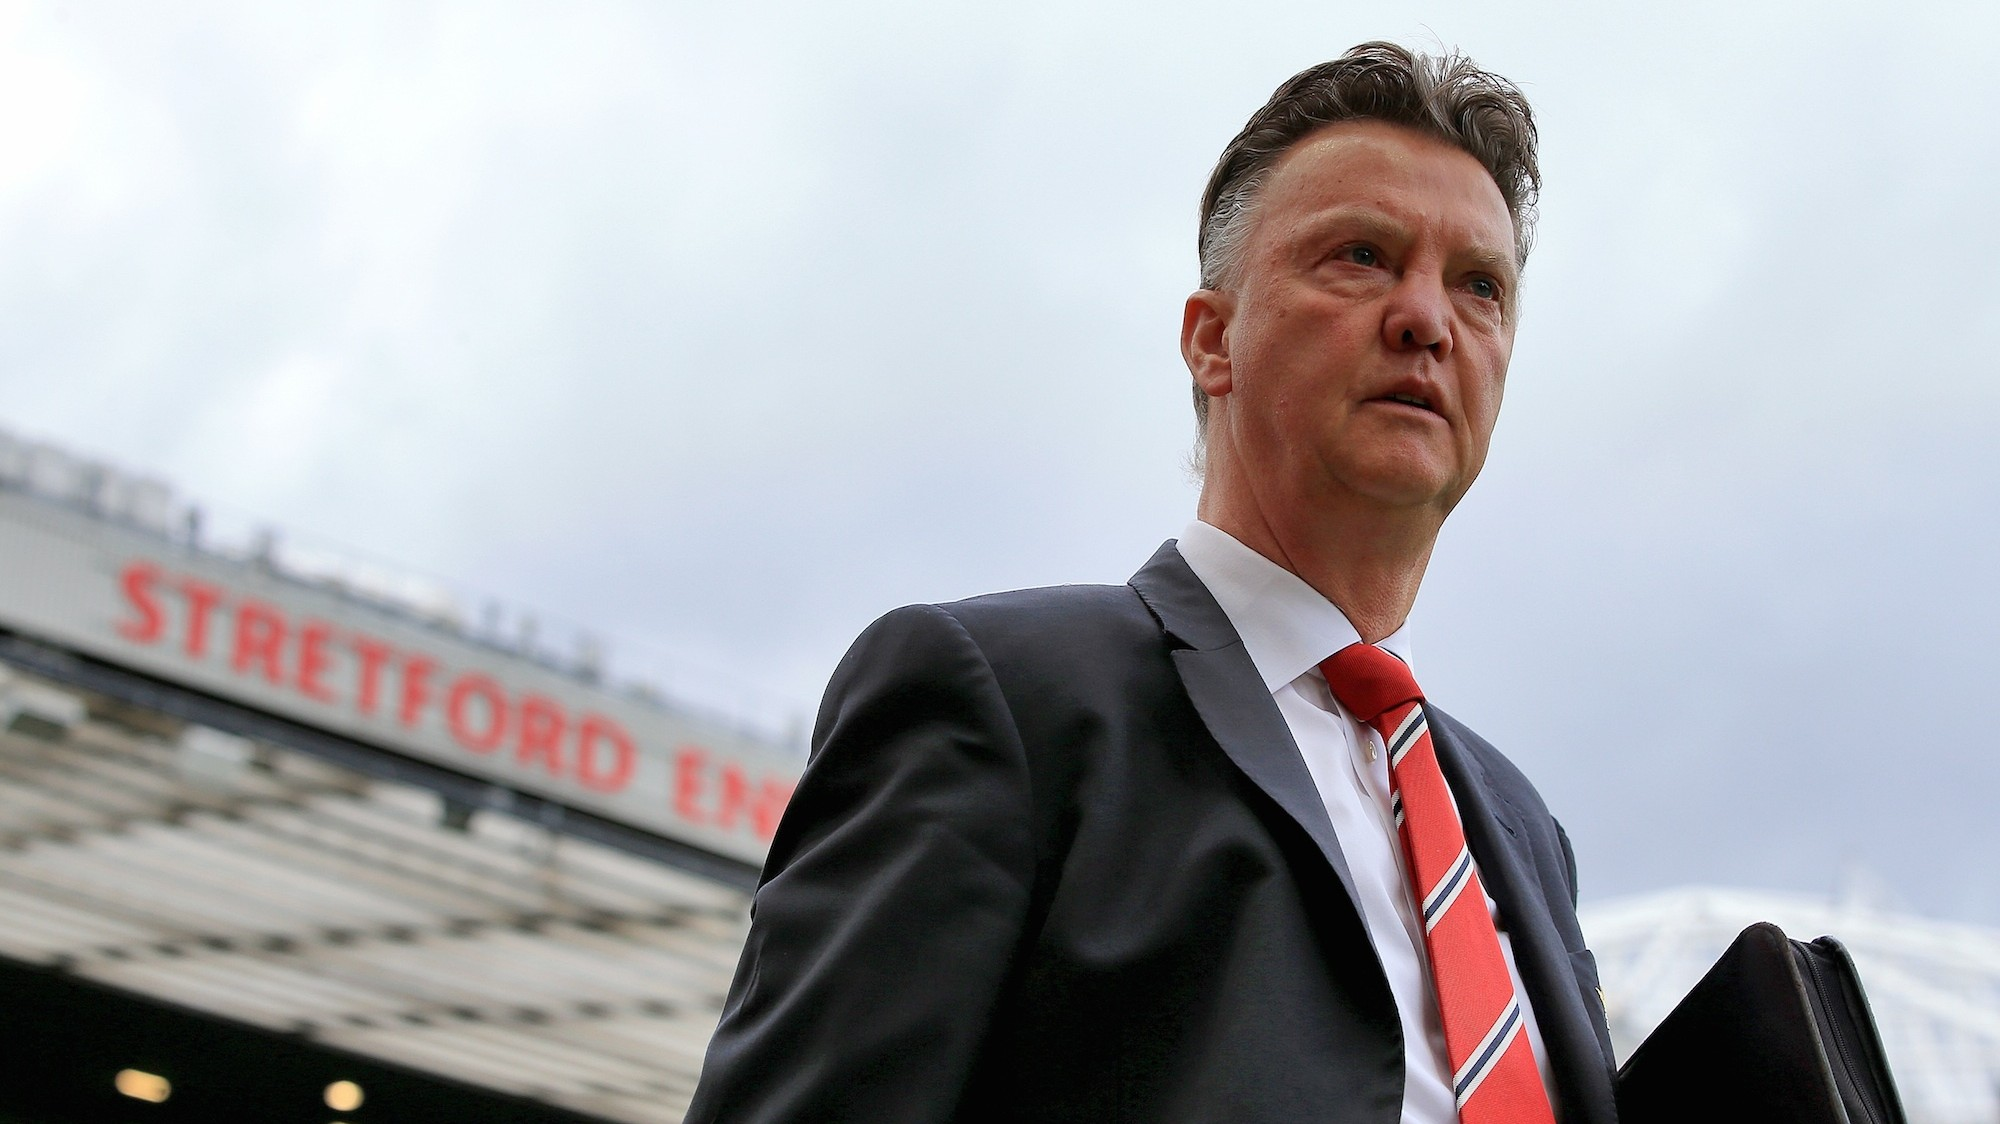 ​Van Gaal's United Revolution is Still on Hold